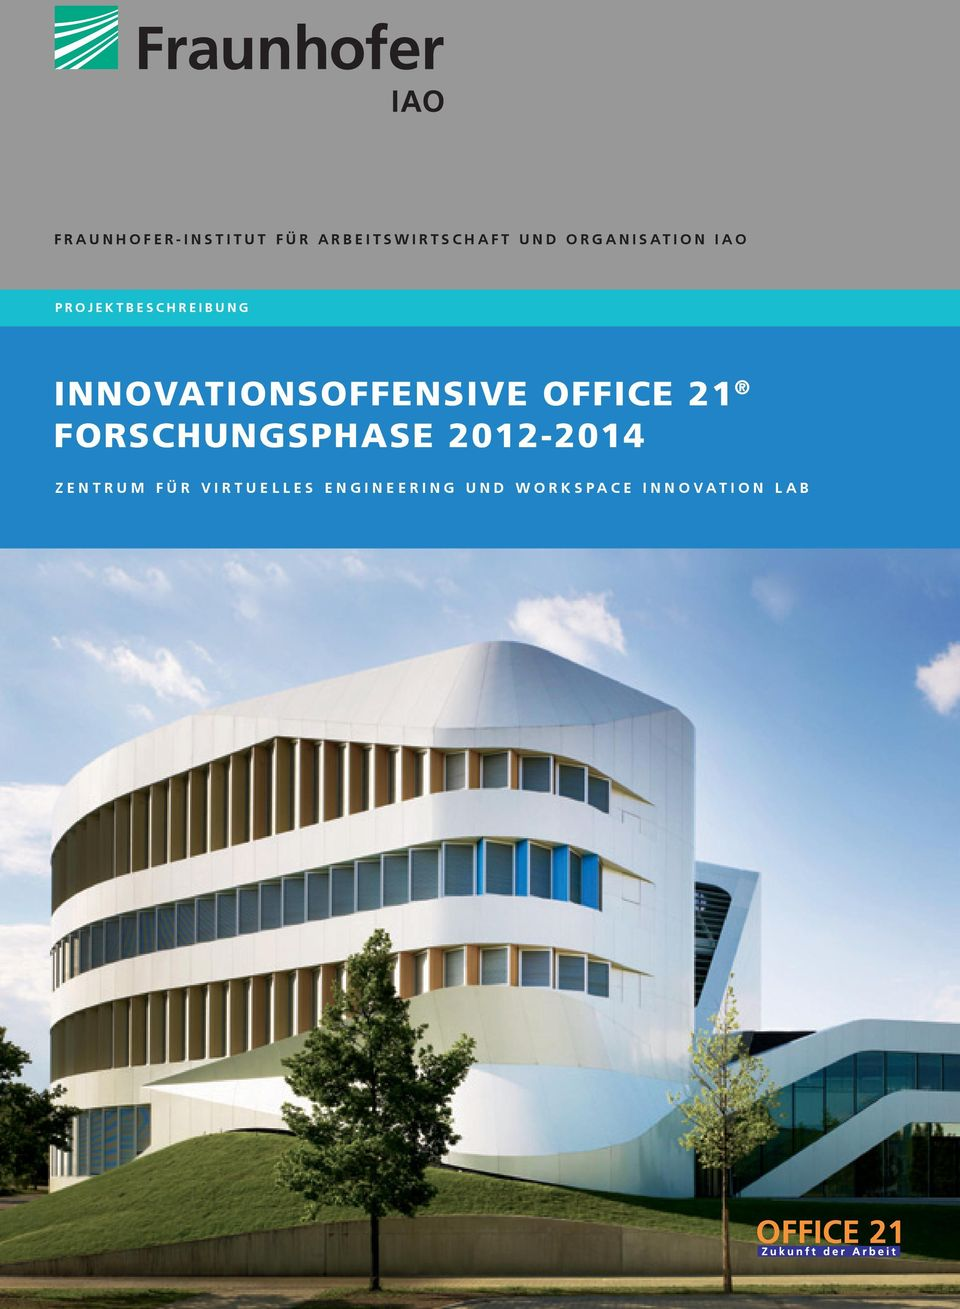 INNOVATIONSOFFENSIVE OFFICE 21 Forschungsphase